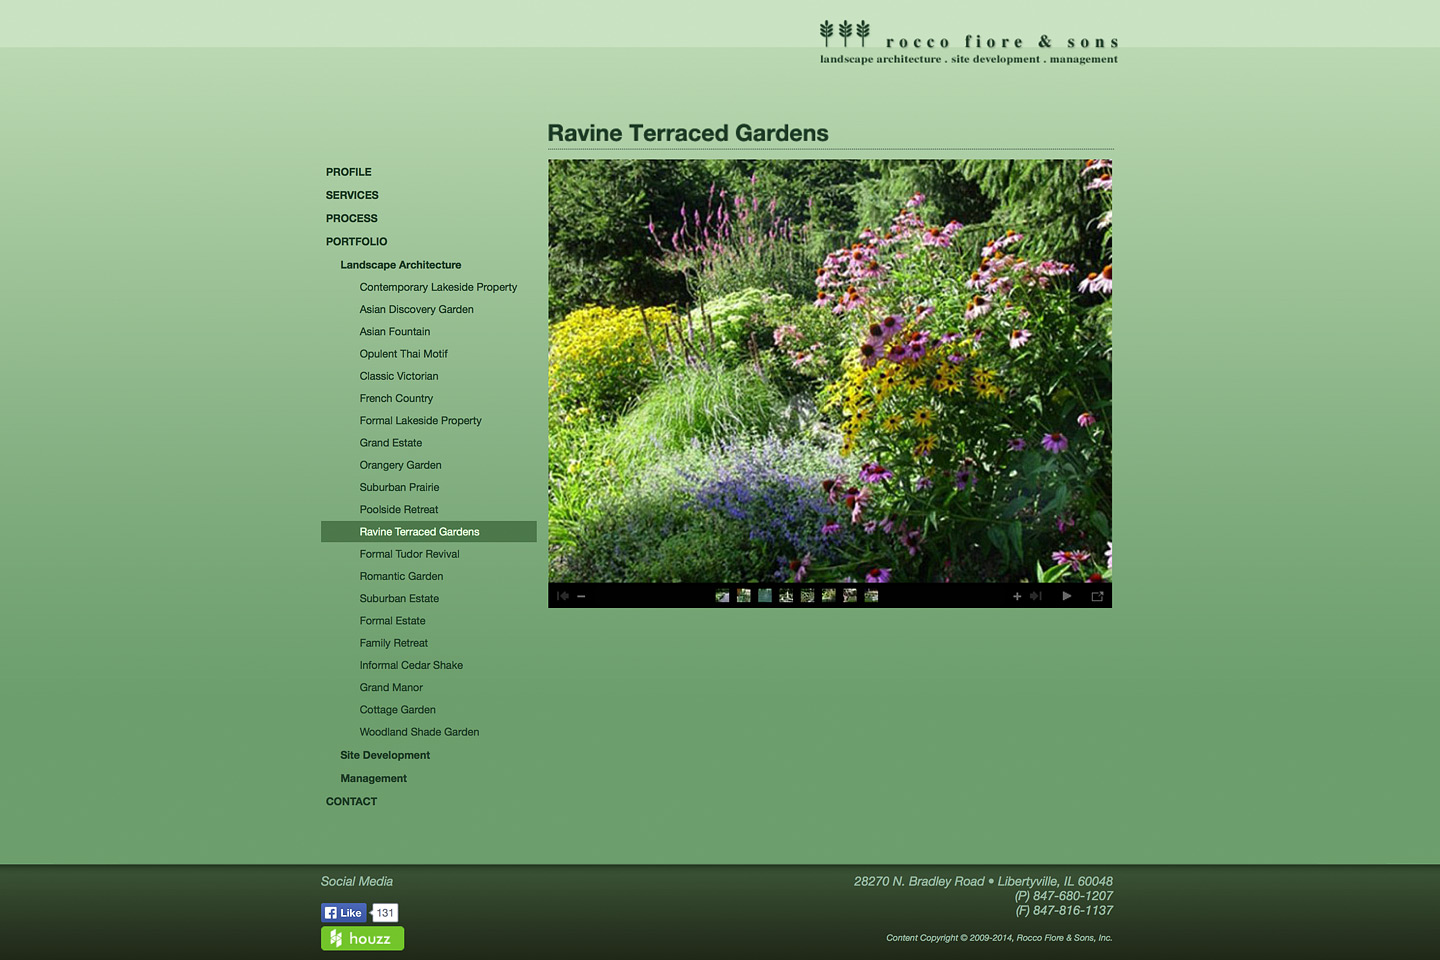 a screen capture of a rocco fiore & sons web photo gallery designed by 4d, inc, featuring a project called ravine terraced gardens